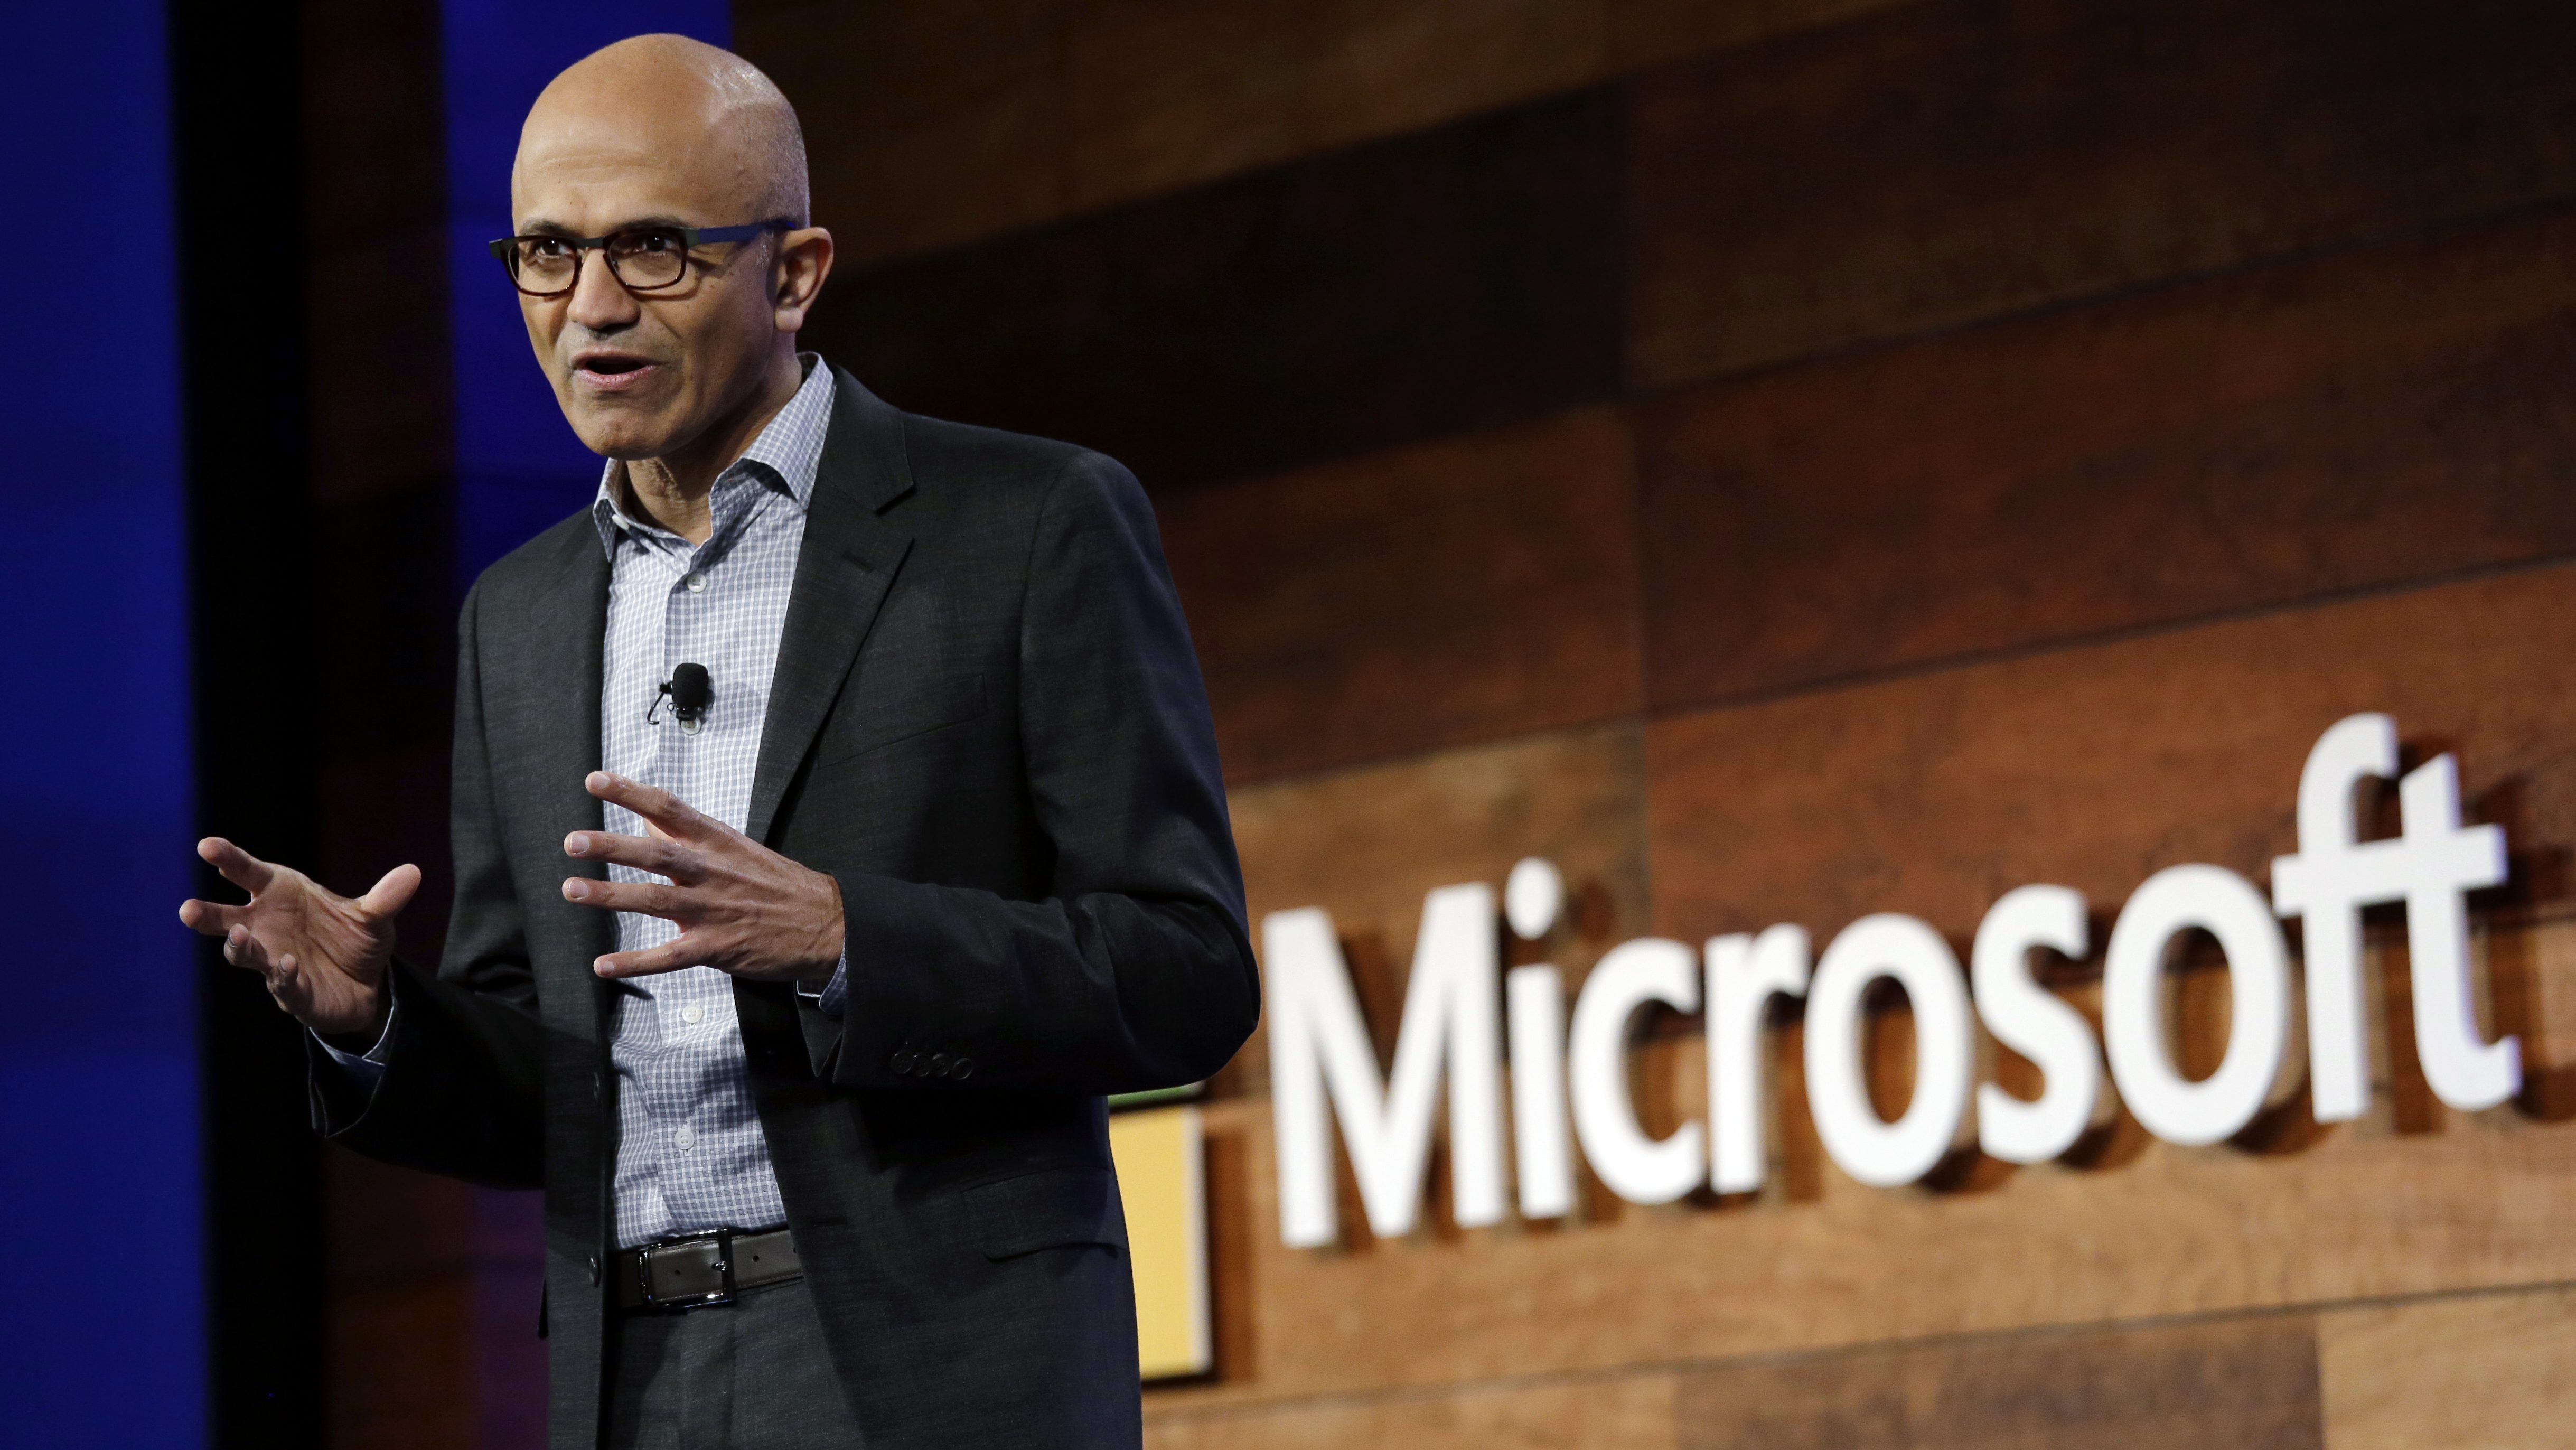 Microsoft CEO Satya Nadella speaks at the annual Microsoft shareholders meeting, Wednesday, Nov. 30, 2016, in Bellevue, Wash. (AP Photo/Elaine Thompson)